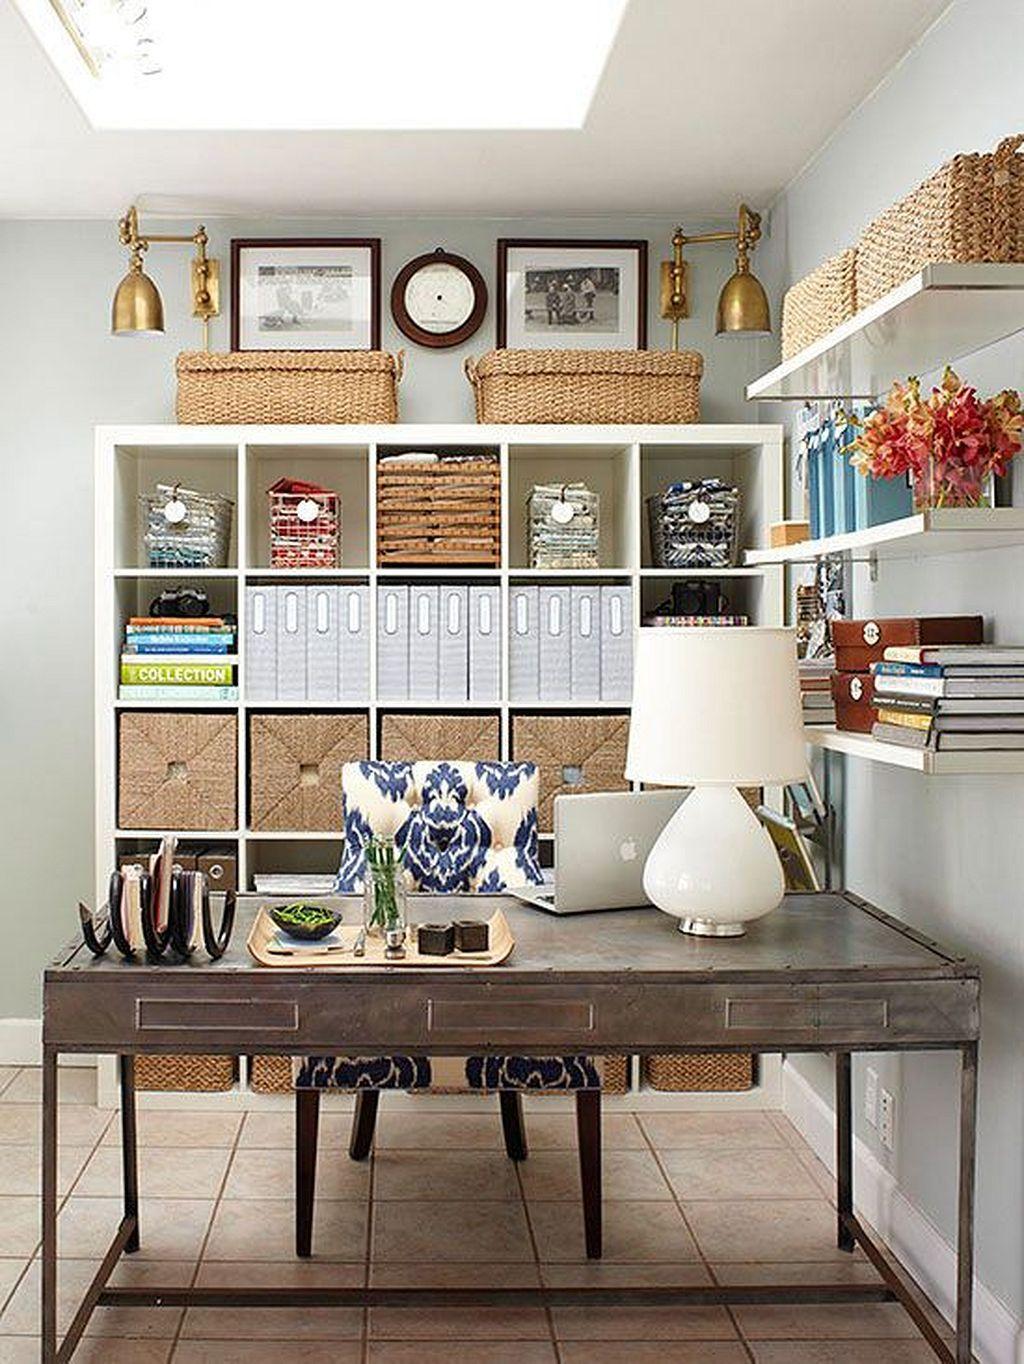 office storage solutions ideas. Amazing 39 Home Office Storage And Organization Ideas Https://homedecormagz.com/39-home-office-storage-and-organization-ideas/ Solutions